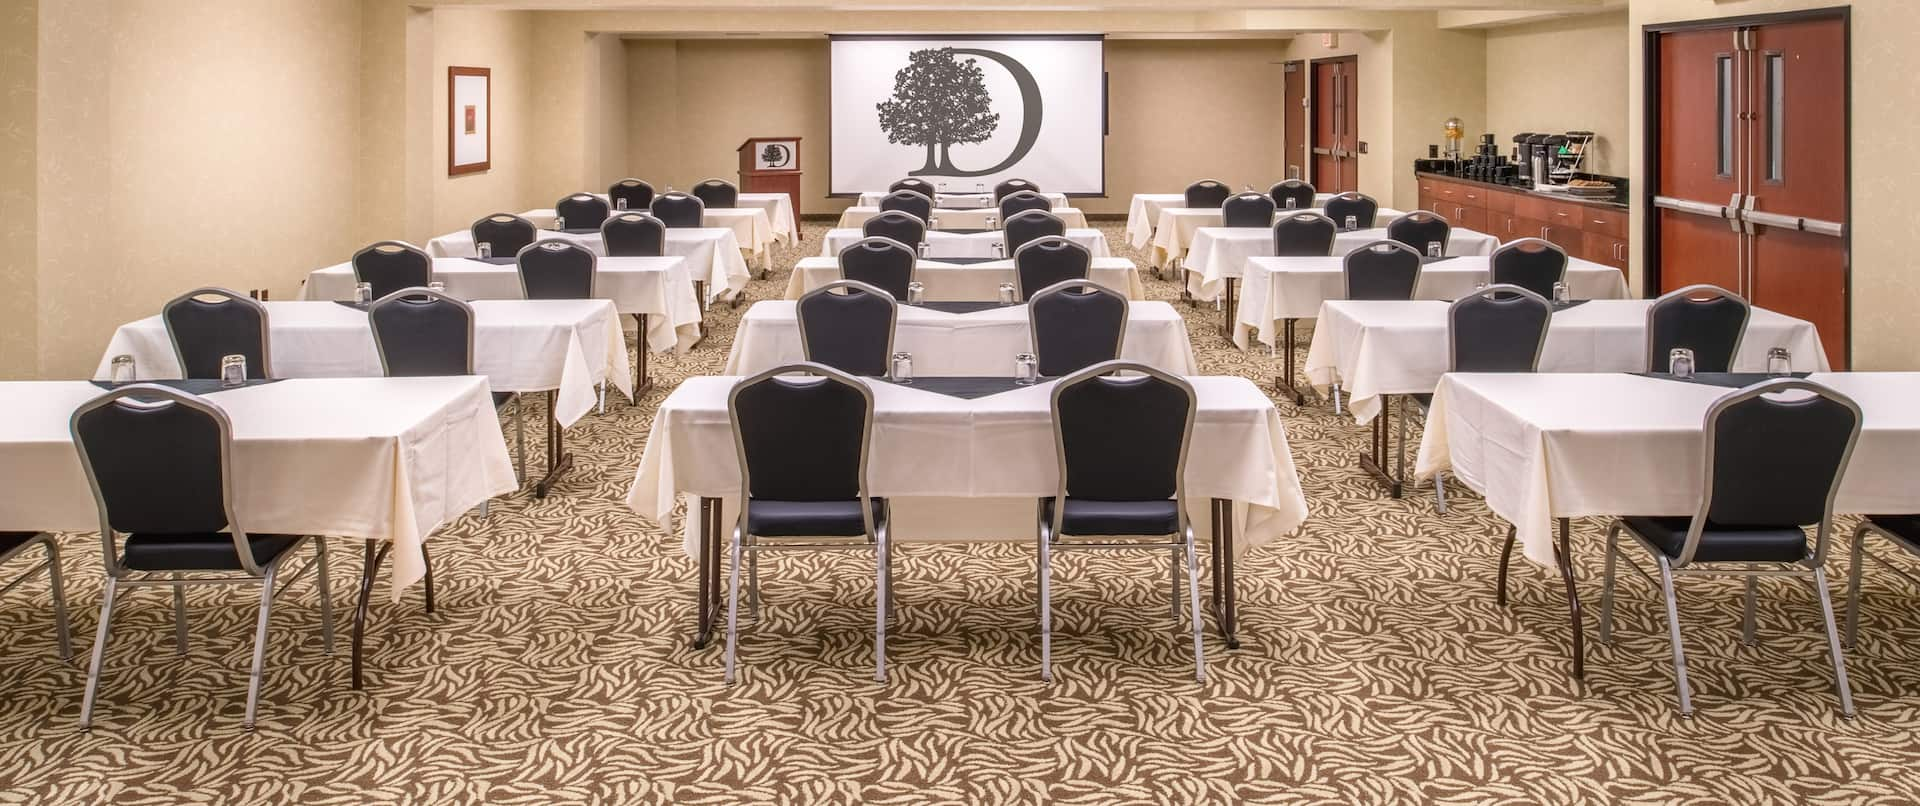 Classroom Setup in Large Meeting Room With Wall Art, Refreshment Counter, Two Entry Doors, Tables, Chairs, Podium, and Presentation Screen